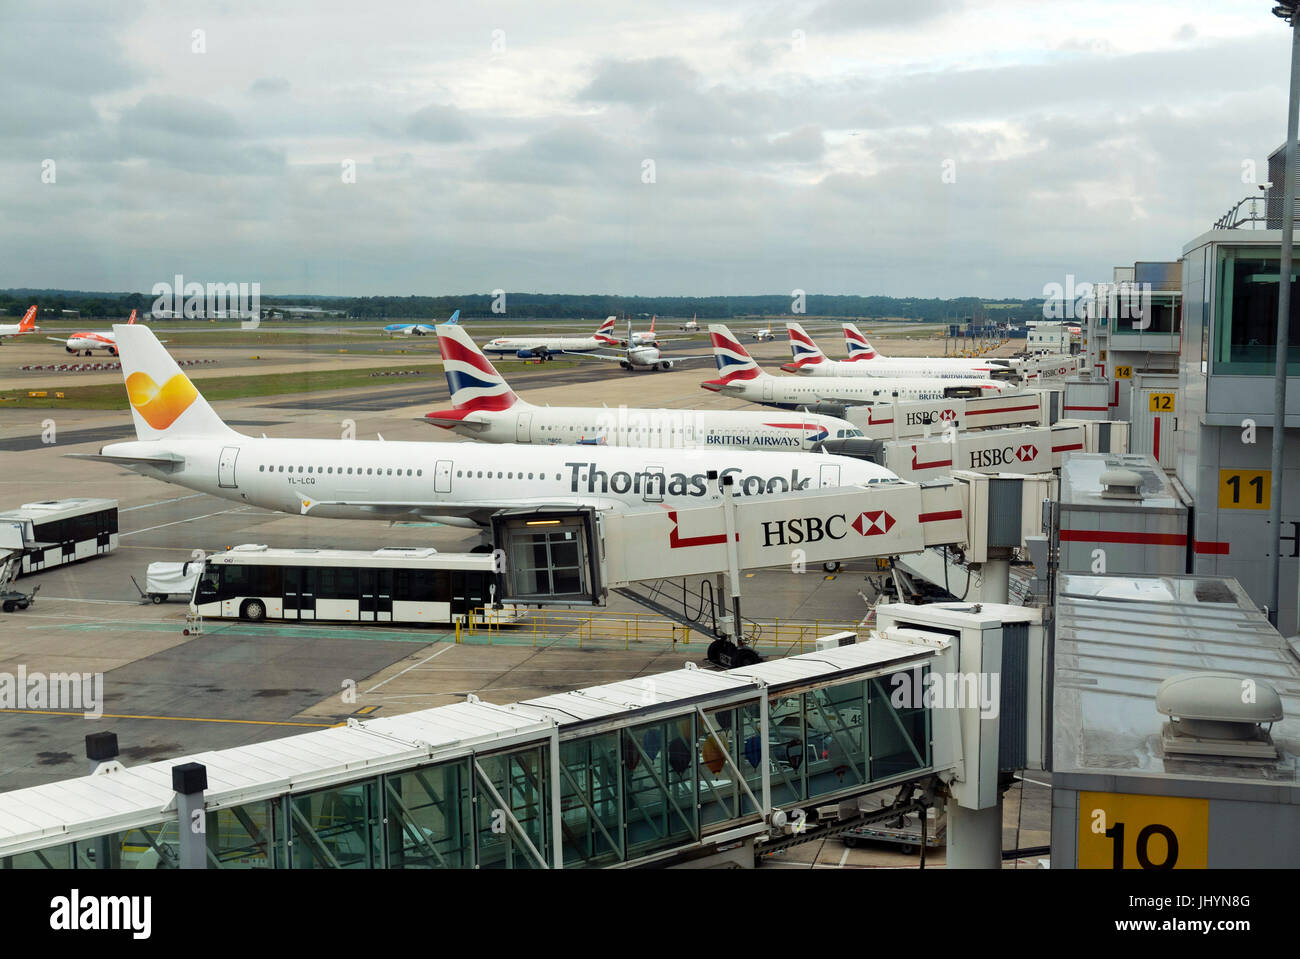 Aircraft stands at Gatwick Airport UK. - Stock Image